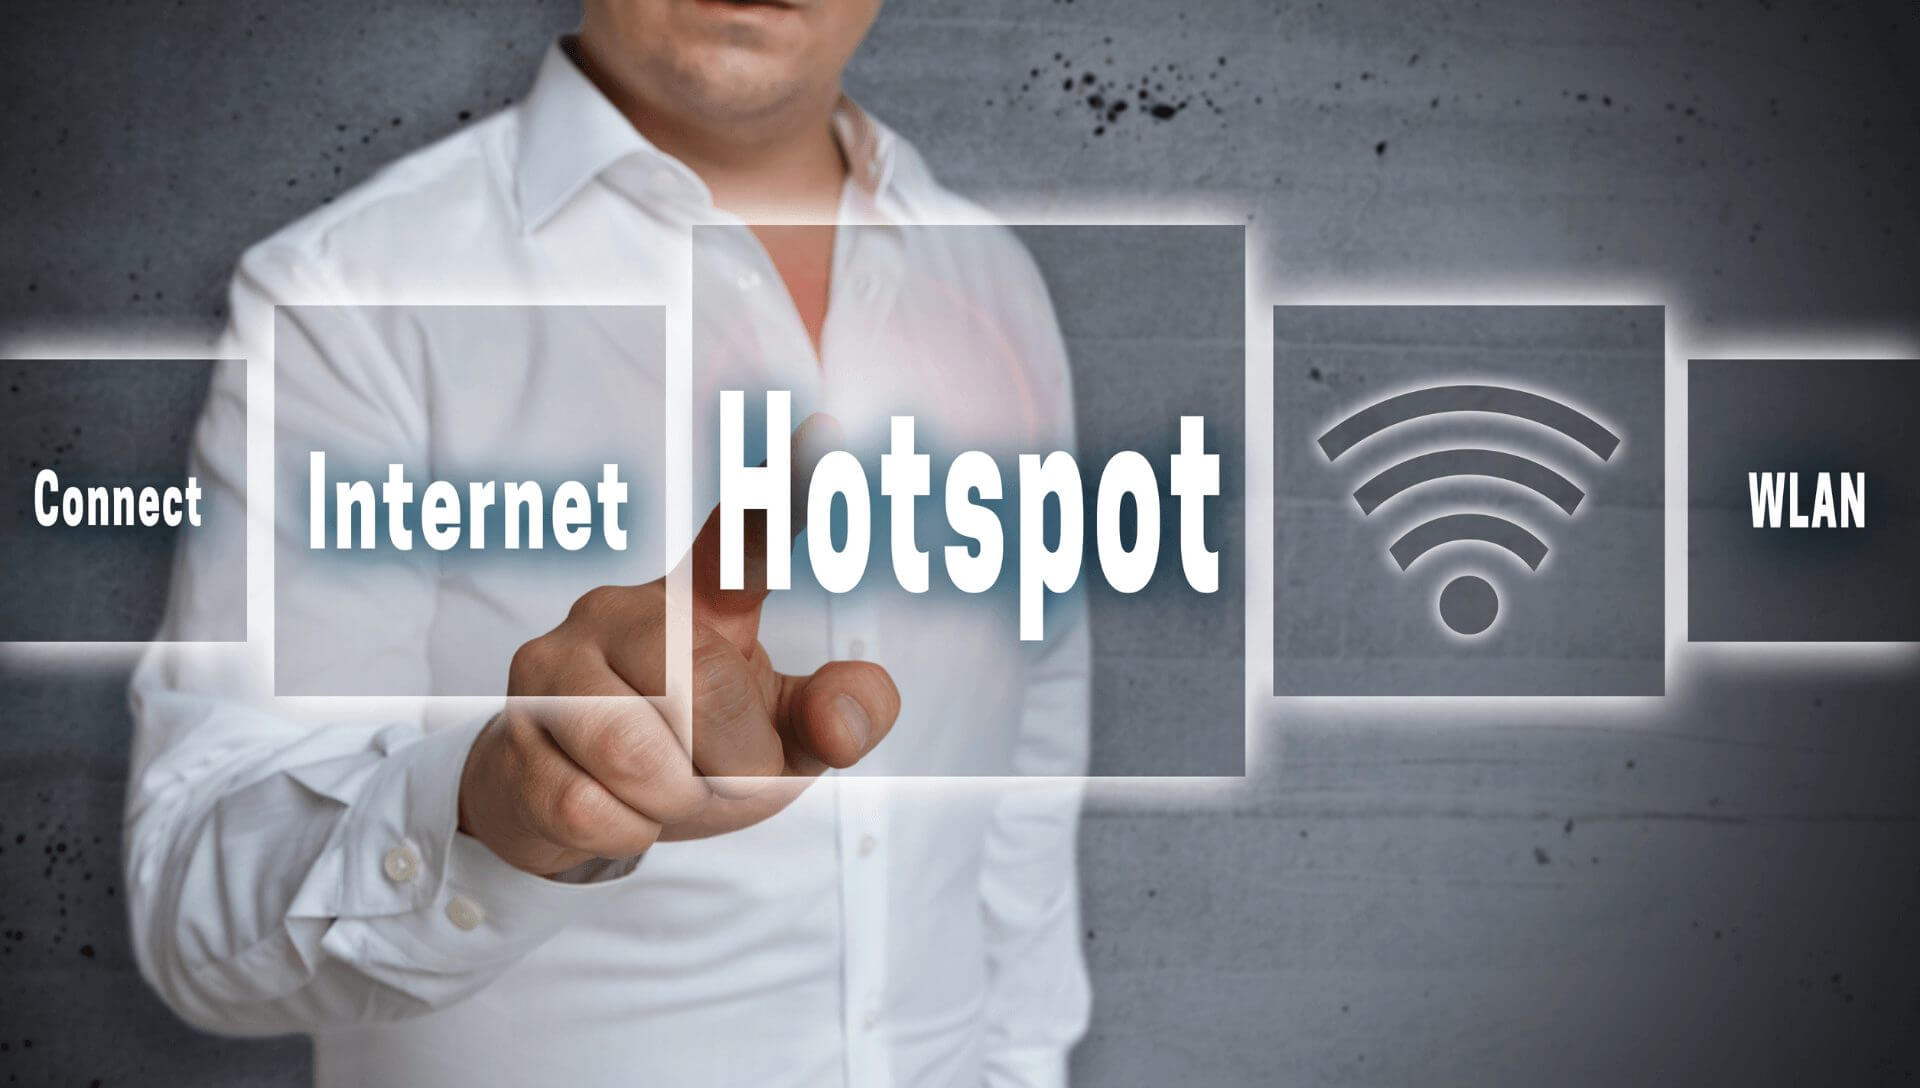 A business man stands behind a clear board with the word hotspot in the middle which he is pointing to. It has other boxes stating internet, WLAN and connect and also has the wifi bar signal indicator.